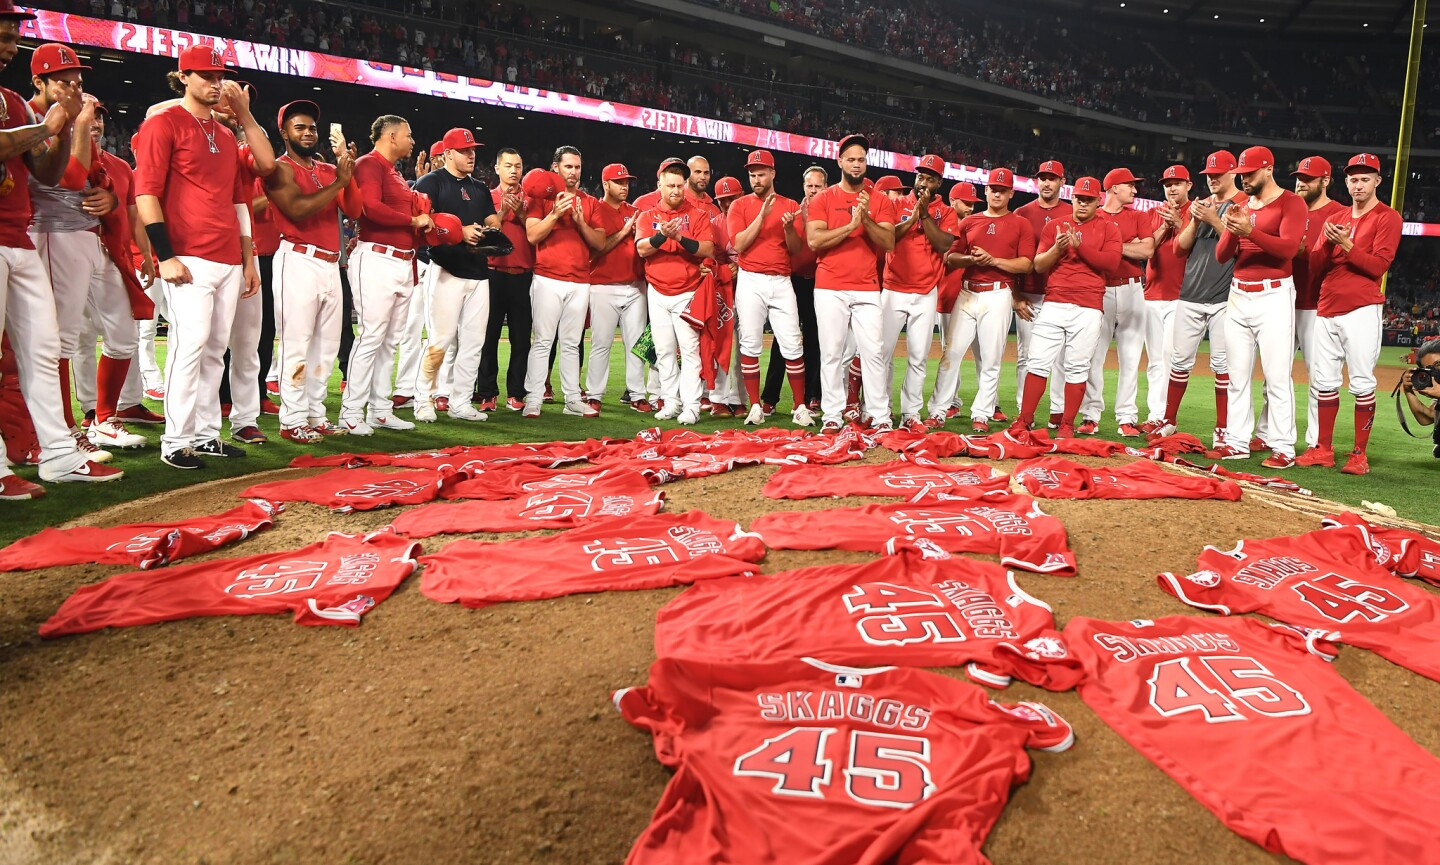 Angel players place their Tyler Skaggs jerseys at the pitchers mound after no-hitting the Mariners.